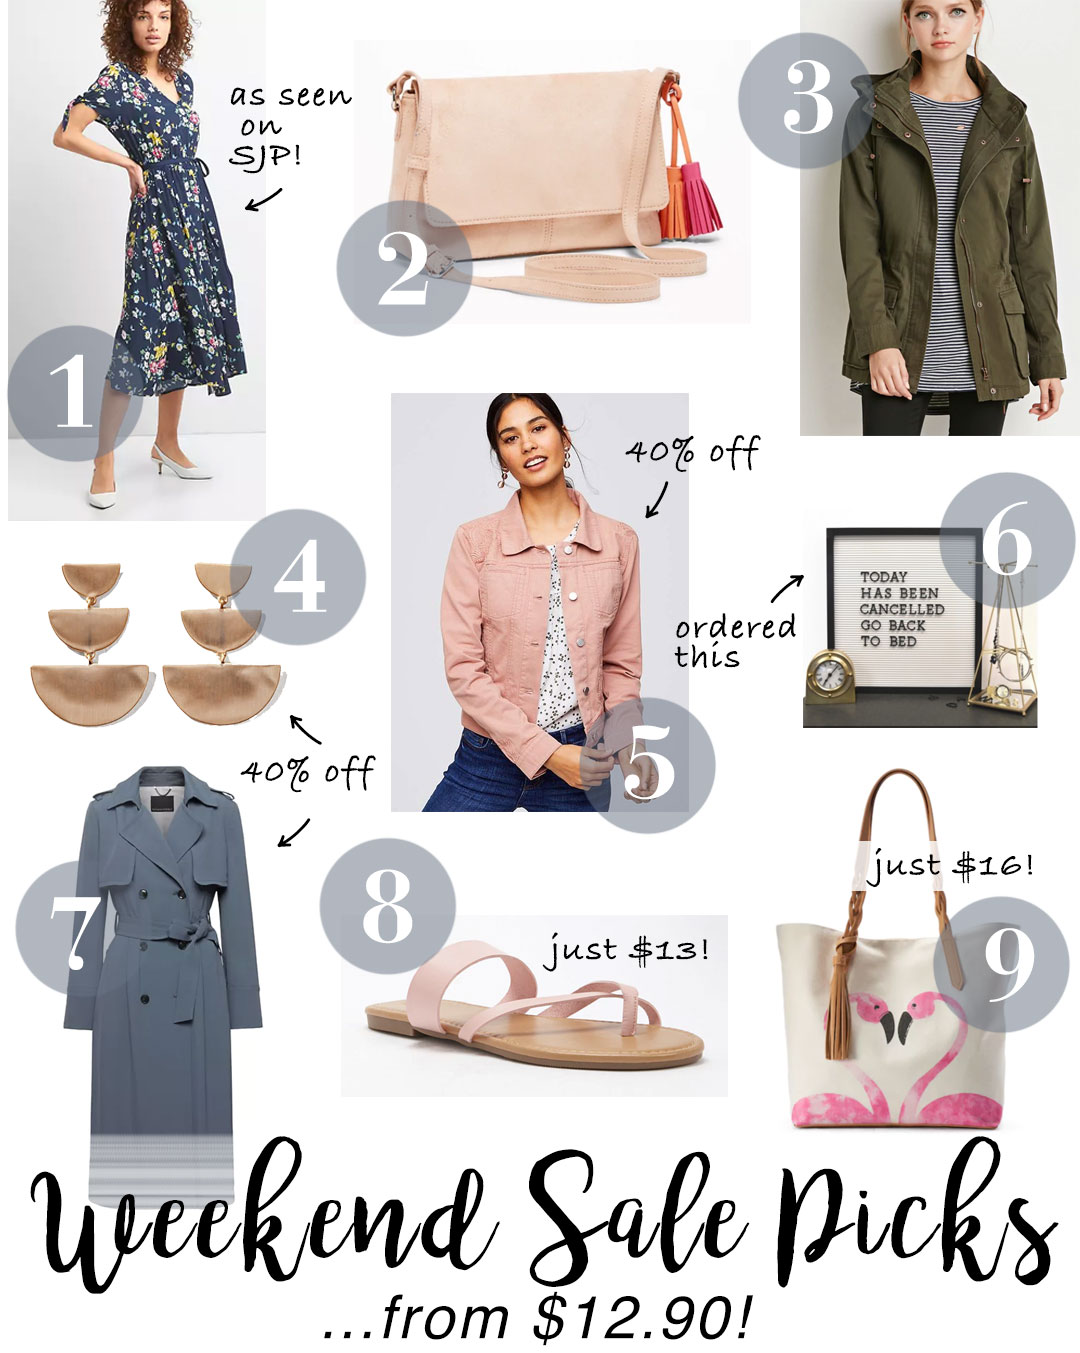 Best weekend sales to shop now! Finds from $12.90